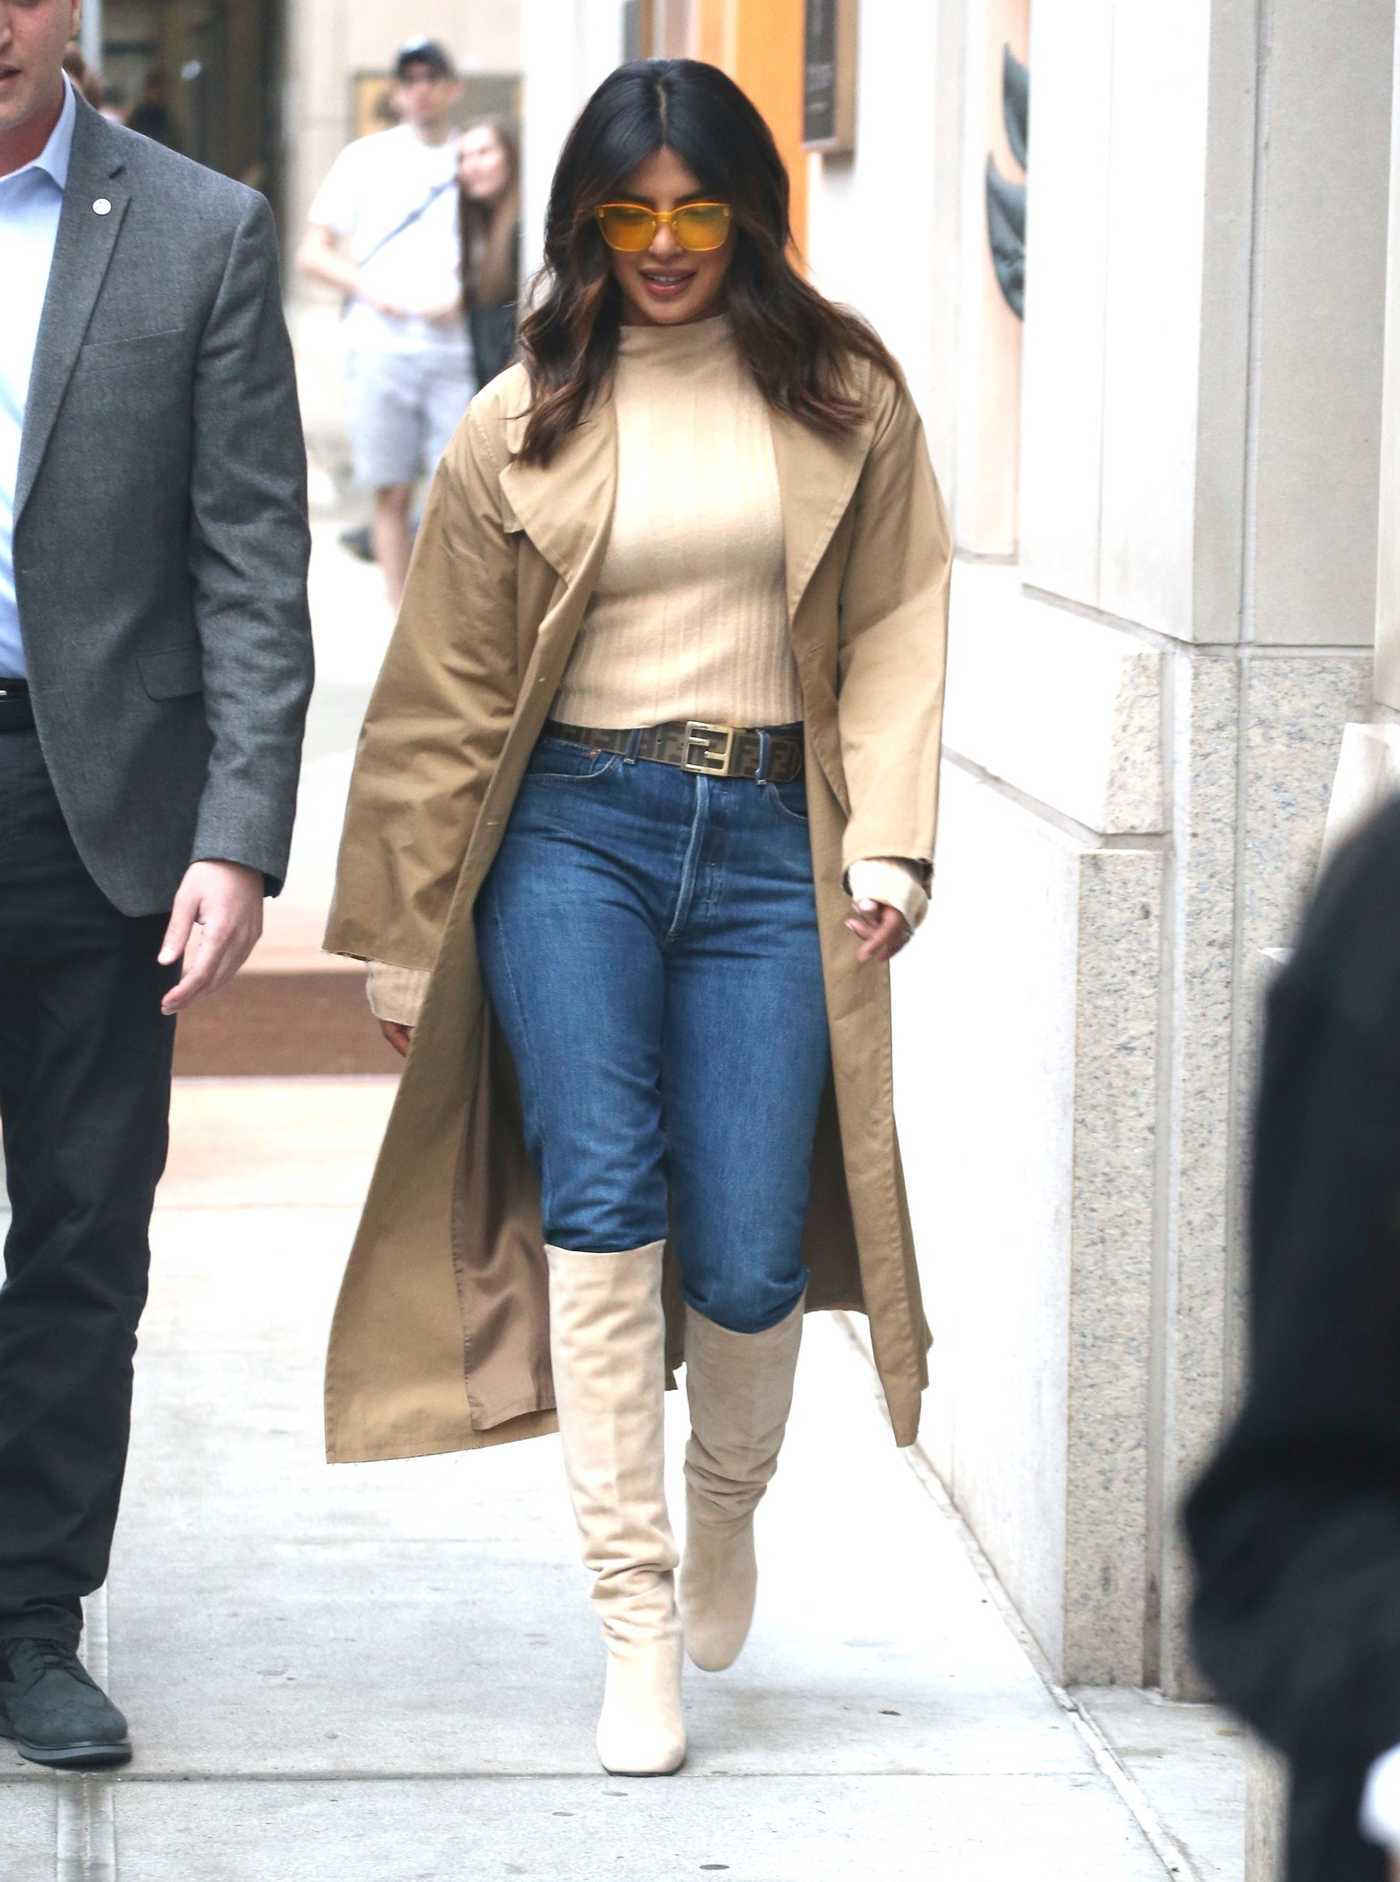 Priyanka Chopra in a Beige Trench Coat Was Seen Out in New York City 02/05/2019